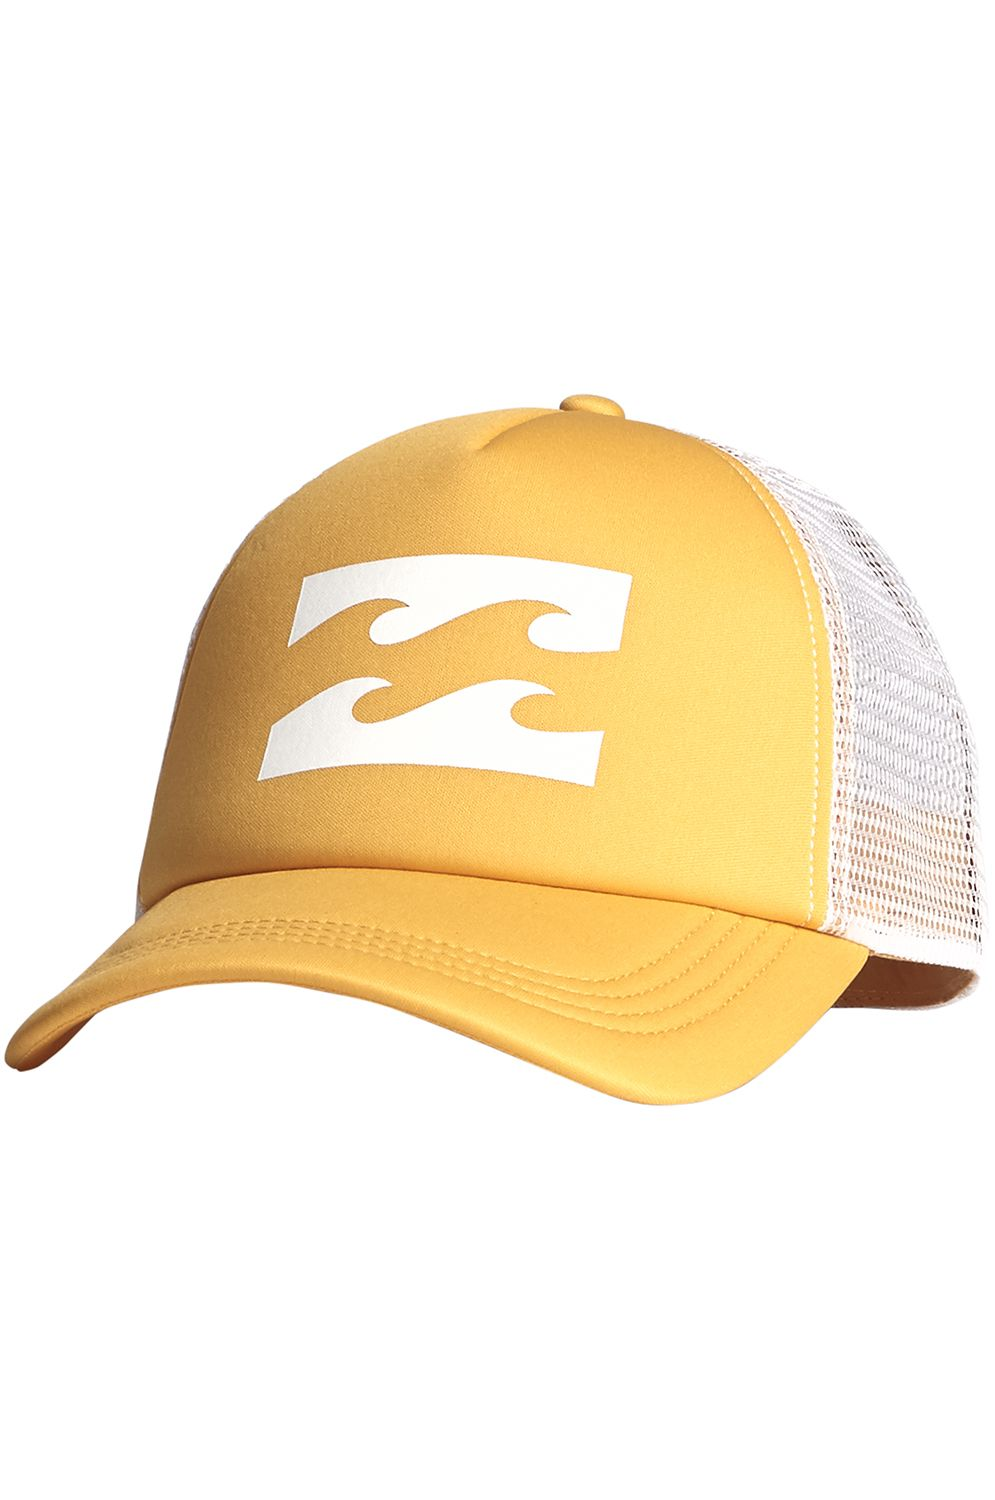 Billabong Cap   BILLABONG TRUCKER BEACH BAZAAR Mango